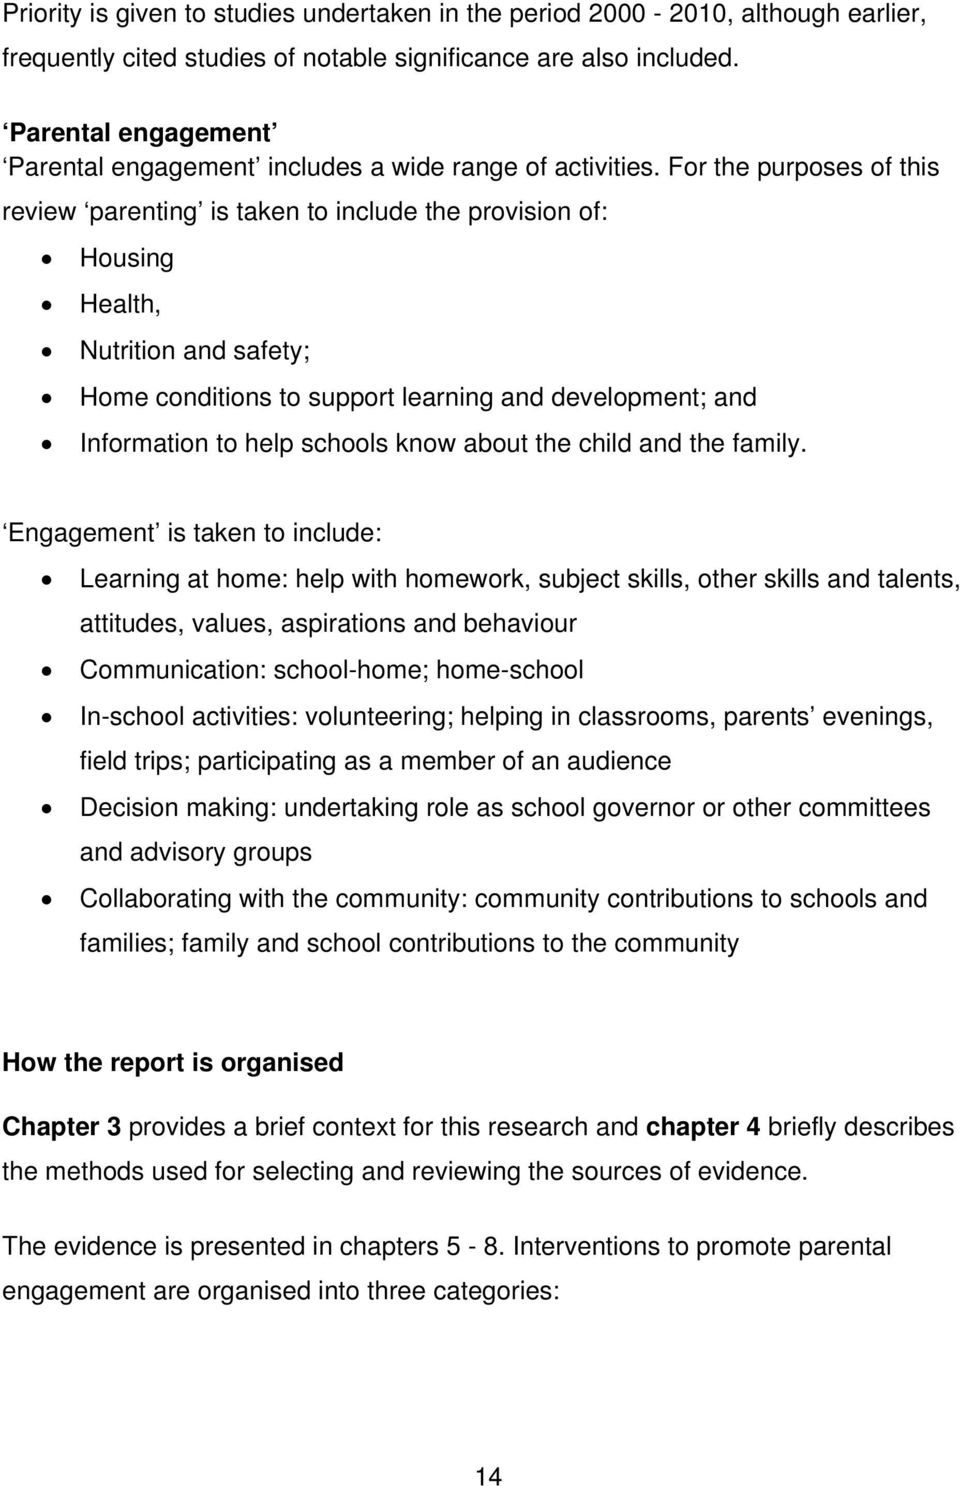 For the purposes of this review parenting is taken to include the provision of: Housing Health, Nutrition and safety; Home conditions to support learning and development; and Information to help